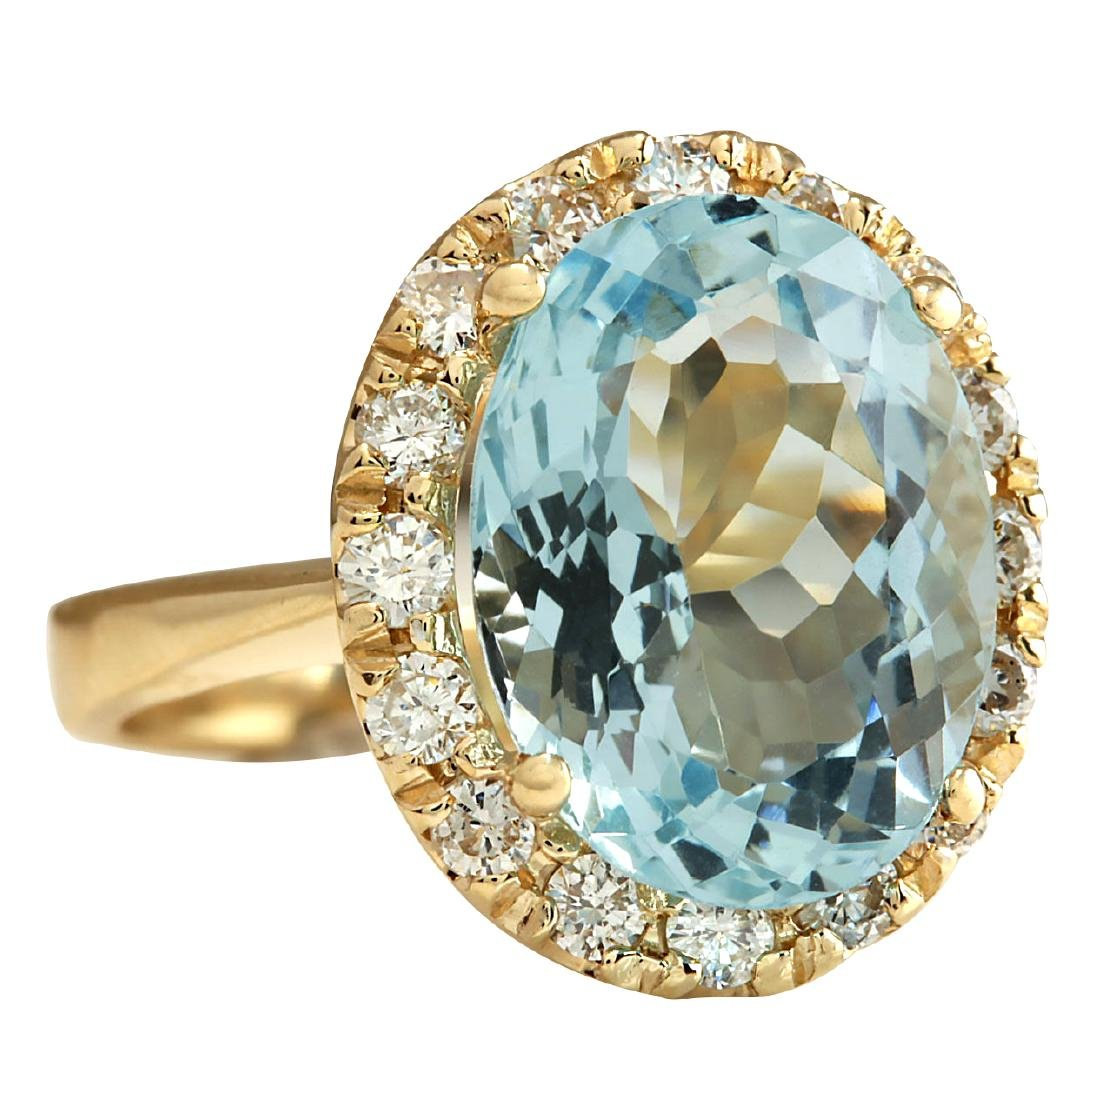 5.32CTW Natural Aquamarine And Diamond Ring 18K Solid - 2